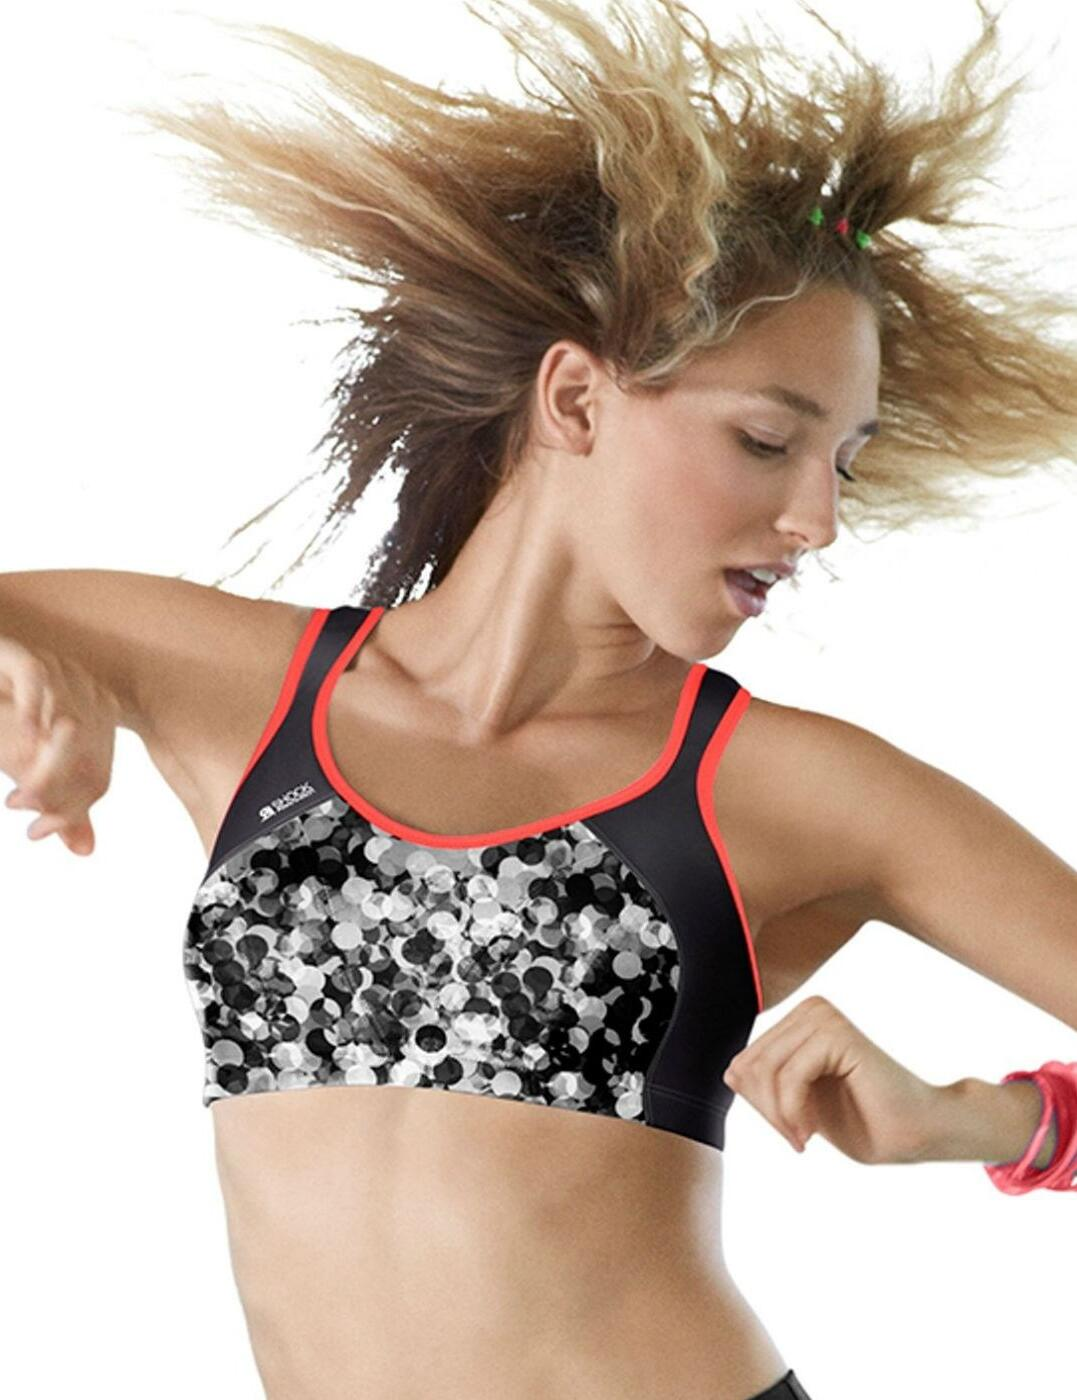 S4490 Shock Absorber High Impact Sports Bra - S4490 Bubble Print